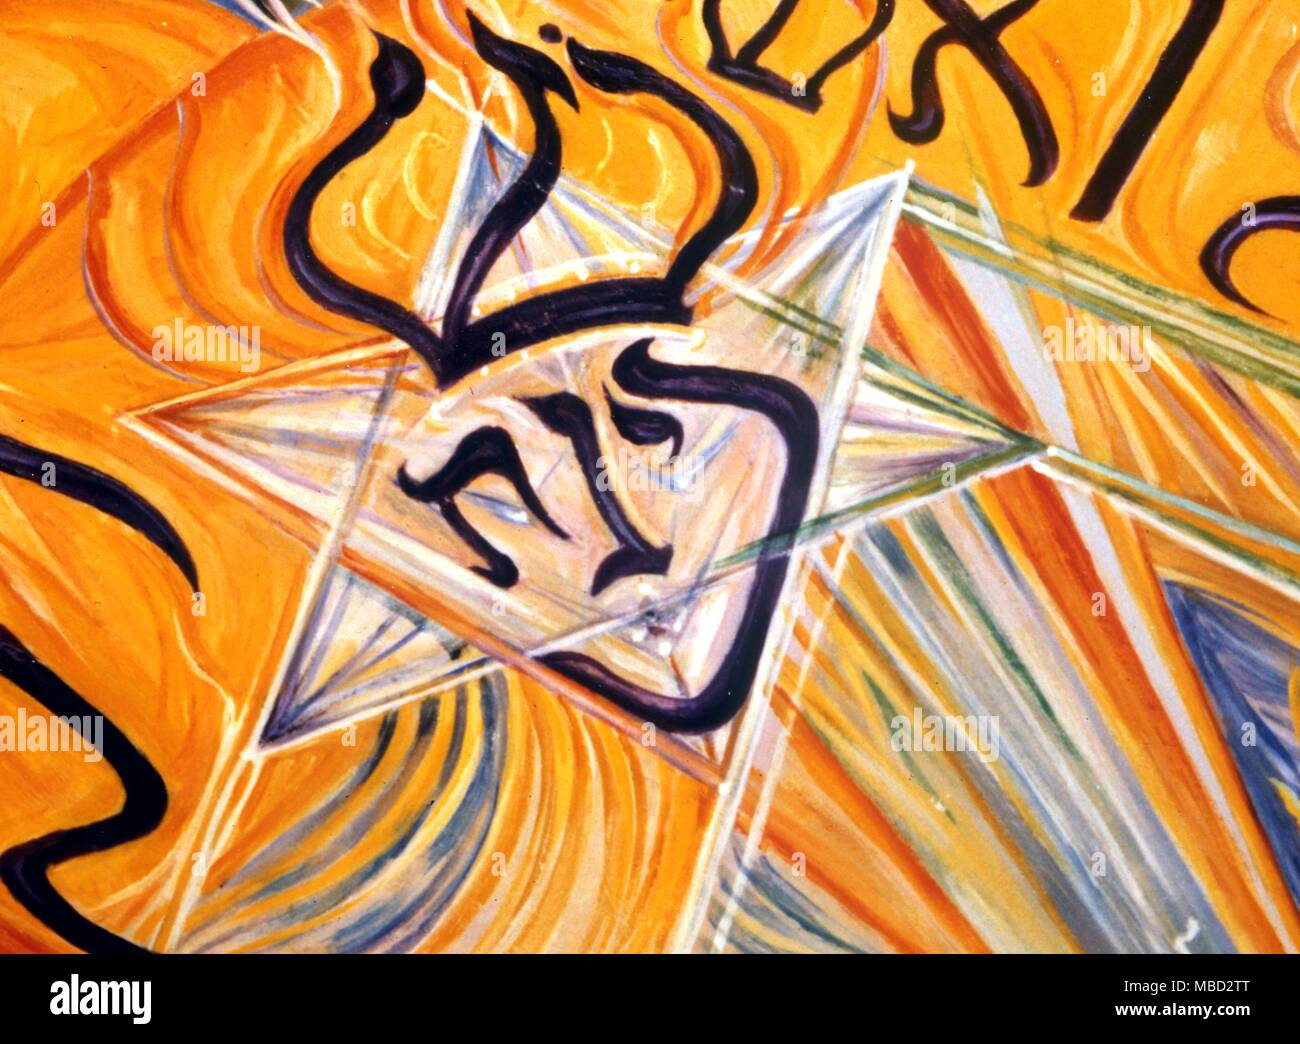 Numerology - Hebrew alphabet letters, with their arcane numerological equivalents, used to pick out the Shekinah, as a six pointed star.  From a painting by Fay Pomerance, c.1960. - ©  / CW - Stock Image